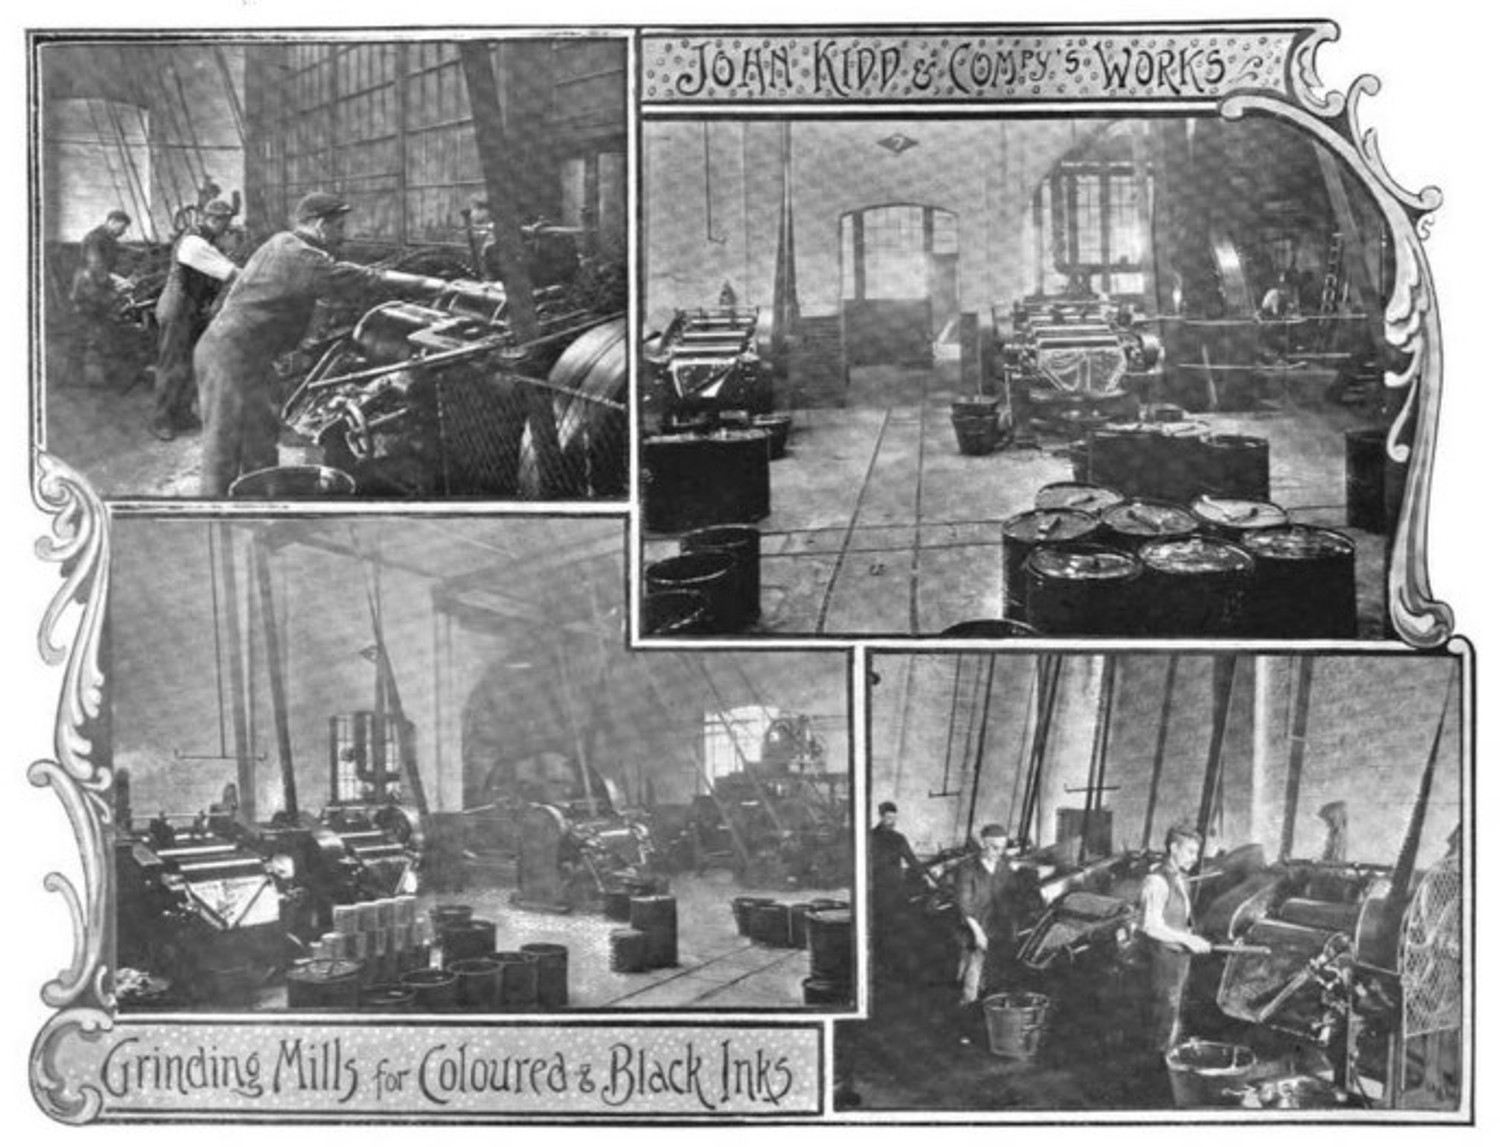 Images of Kidd & Co ink works on Fish Island, 1899